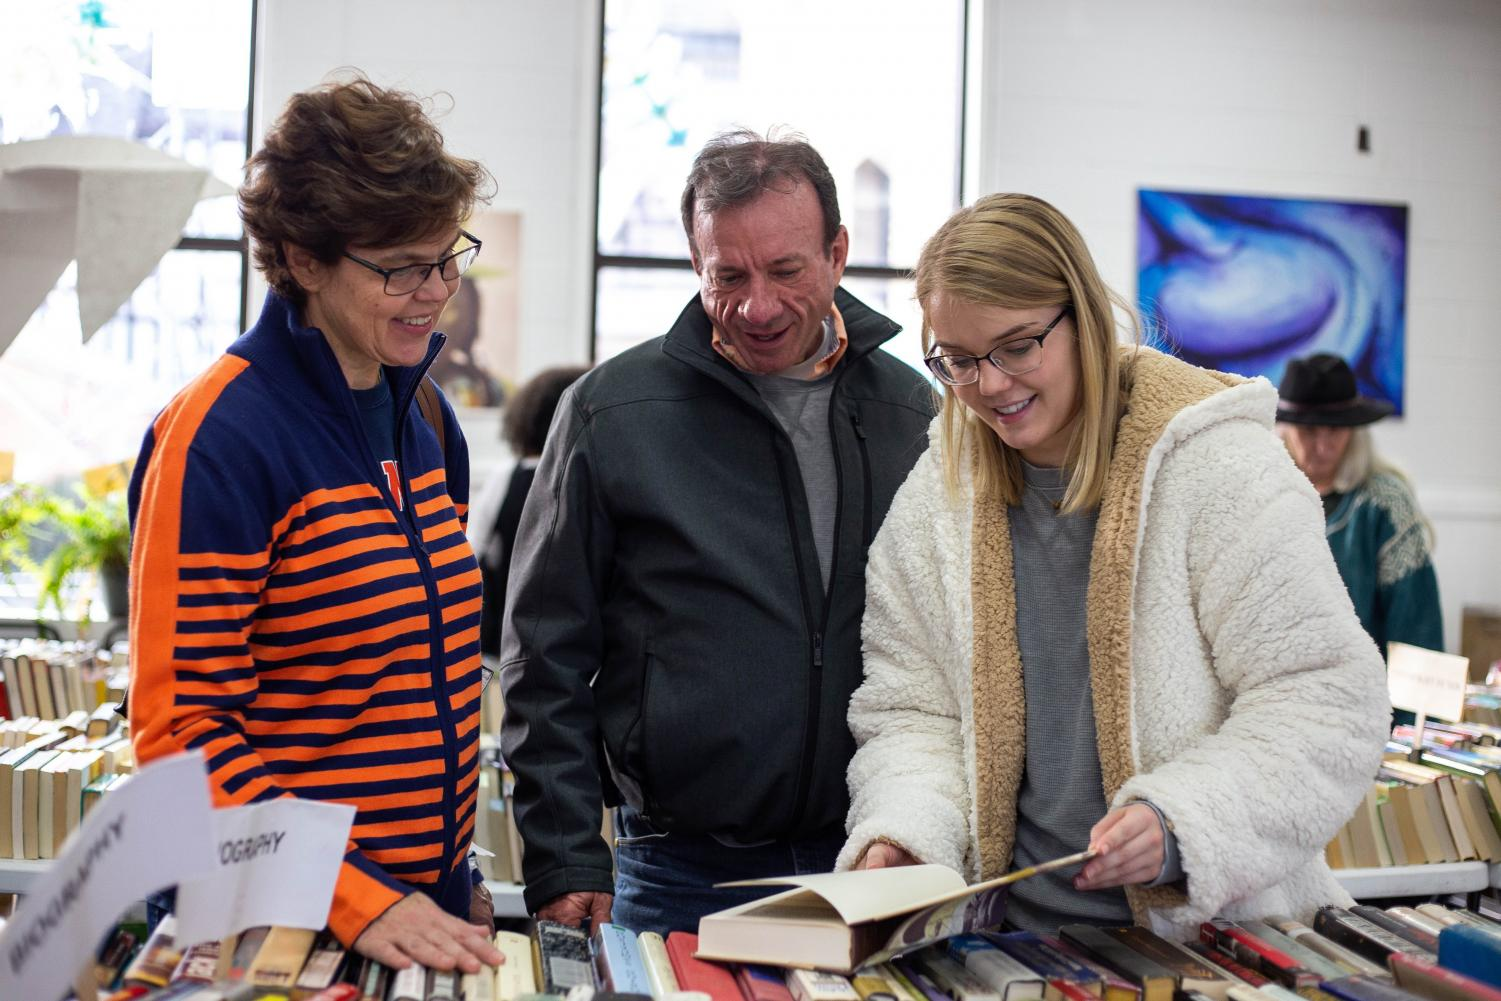 Madeleine Brown, president of the Books to Prisoners RSO, helps Renee and Neal Brown find books at the group's book sale at the Independent Media Center on Nov. 3. The RSO, which started as a local nonprofit organization, aims to provide incarcerated individuals with access to reading material.